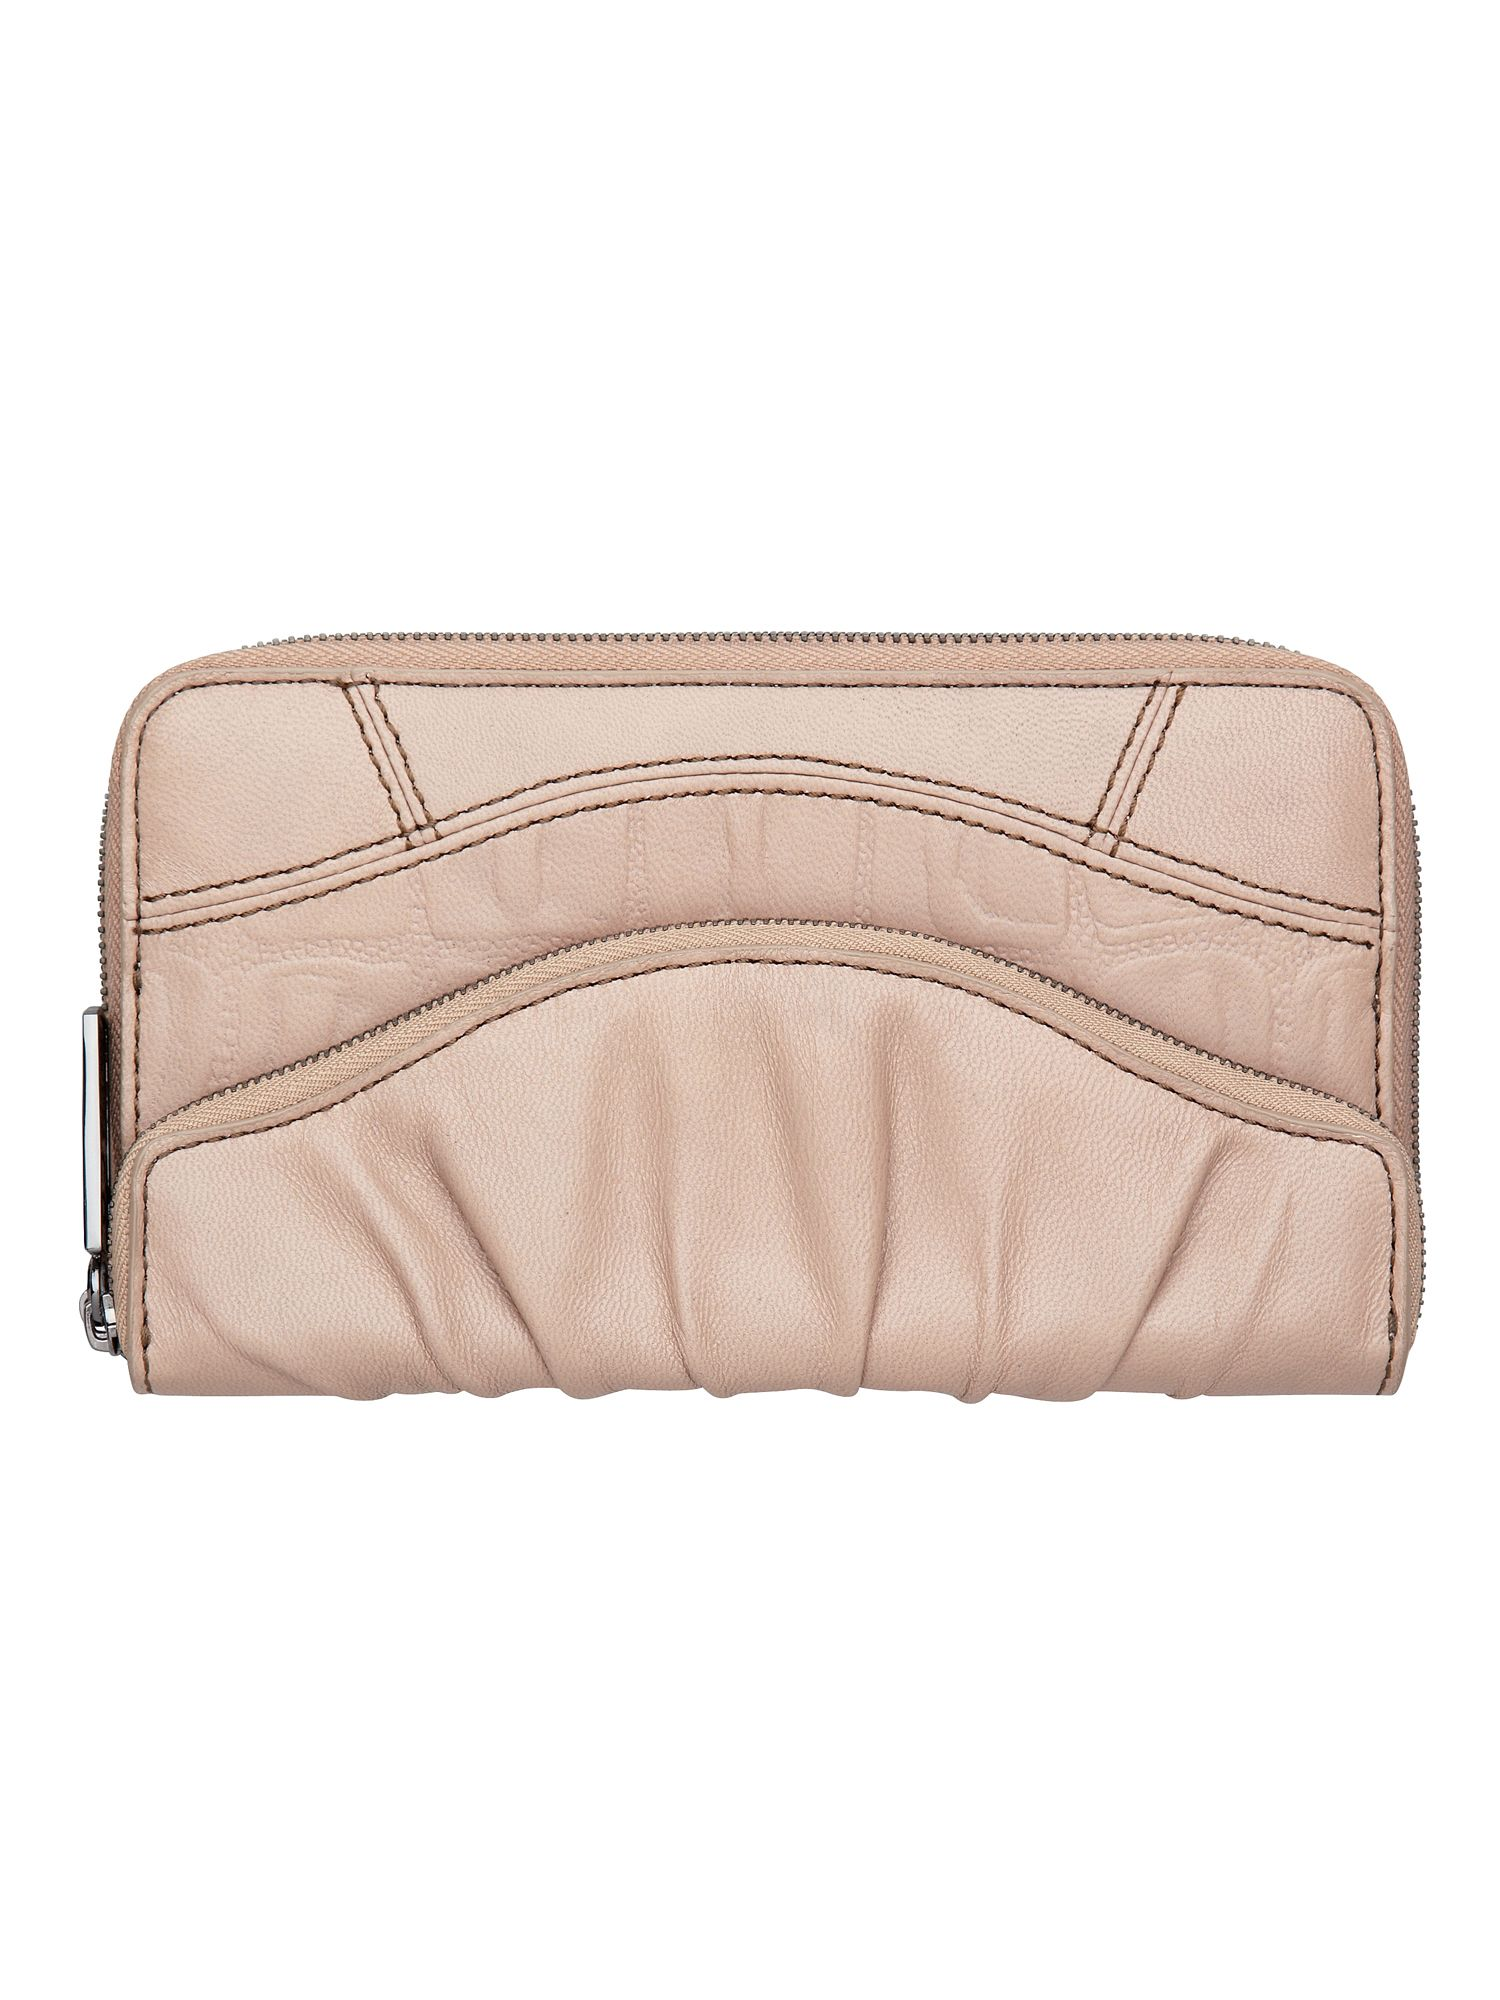 Mimco Bartertown wallet product image